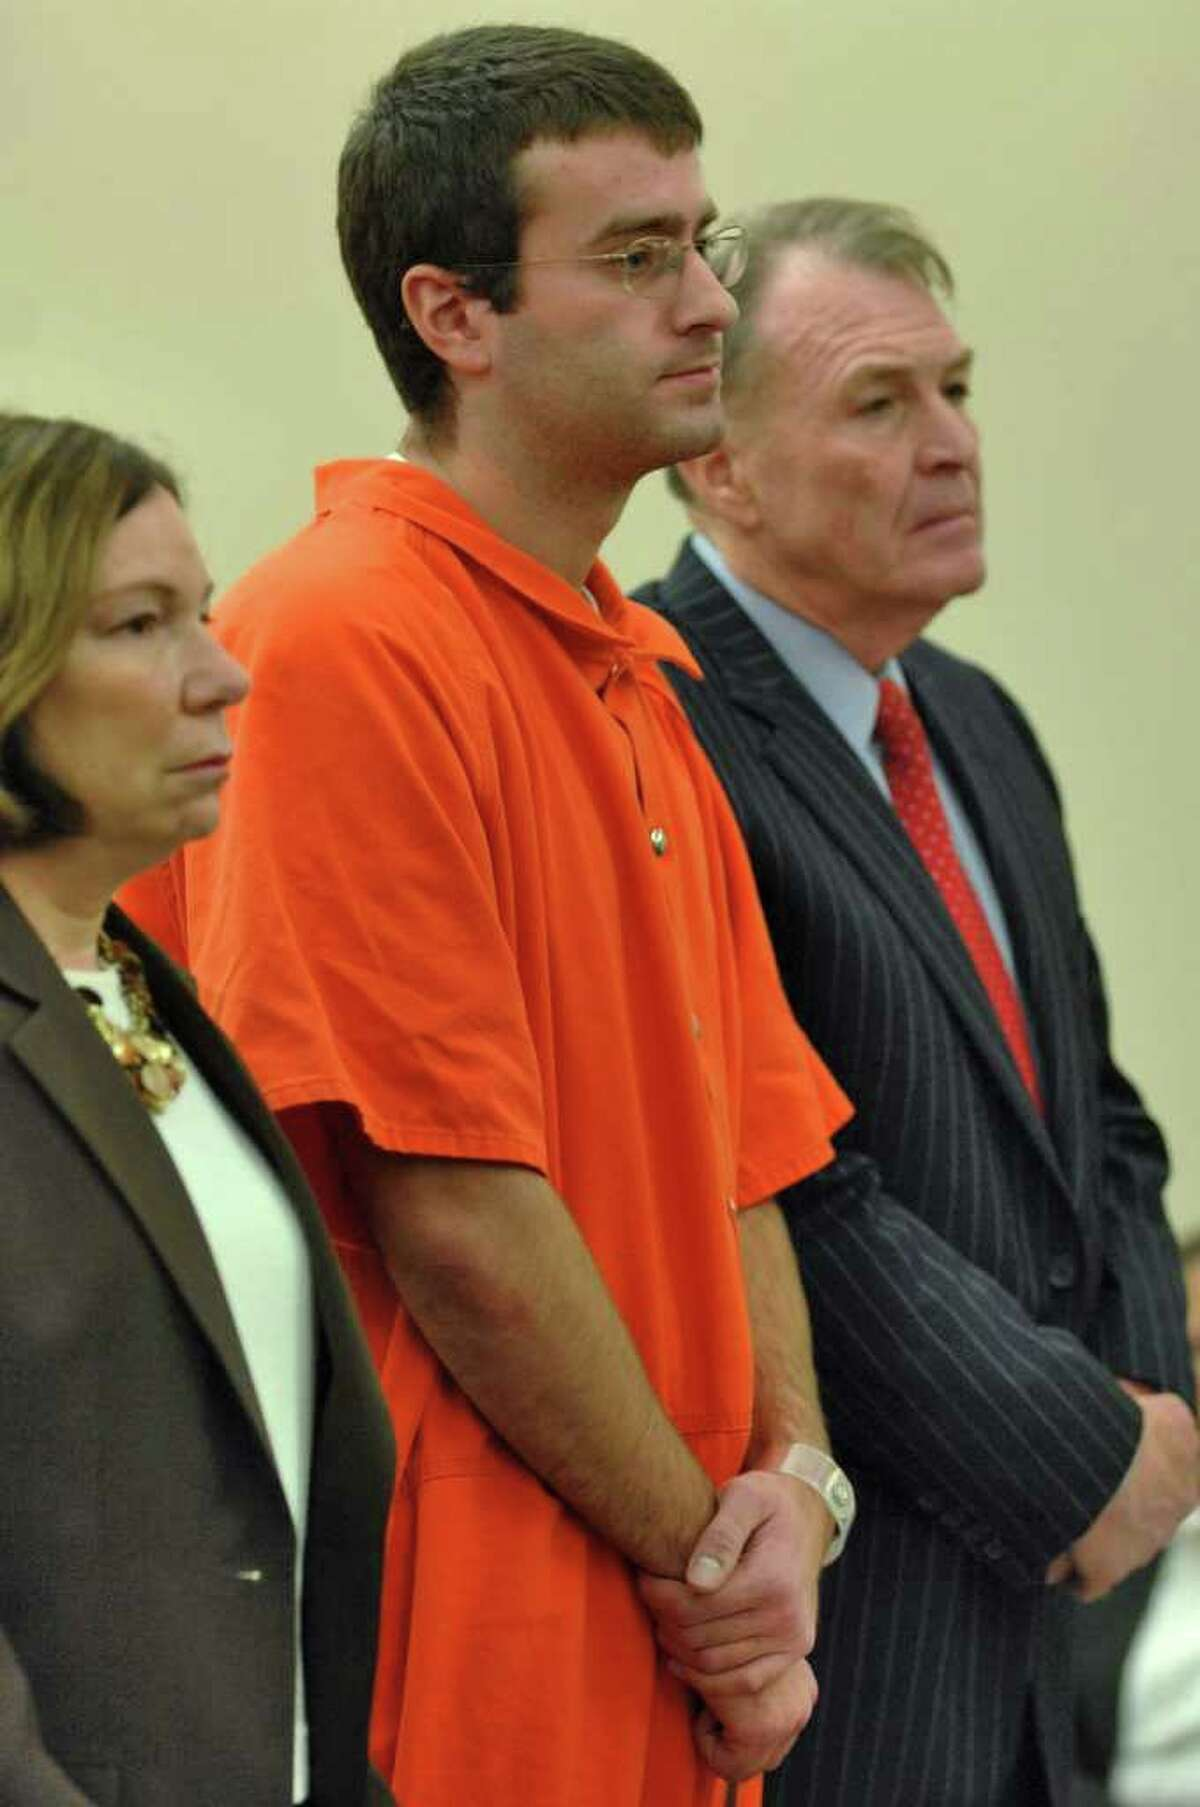 Christopher Porco, center, stands next to his attorneys, Laurie Shanks and Terence L. Kindlon, as he is sentenced in December 2006 to 46 years to life in prison for the murder of his father and the attempted murder of his mother. (Times Union/Philip Kamrass)